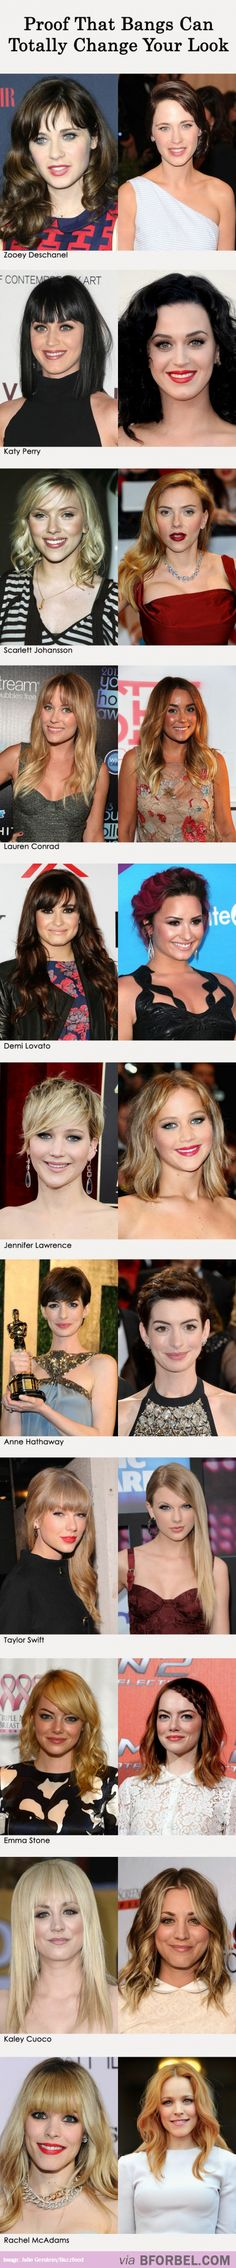 11 Banging Transformations That Totally Change Your Look…